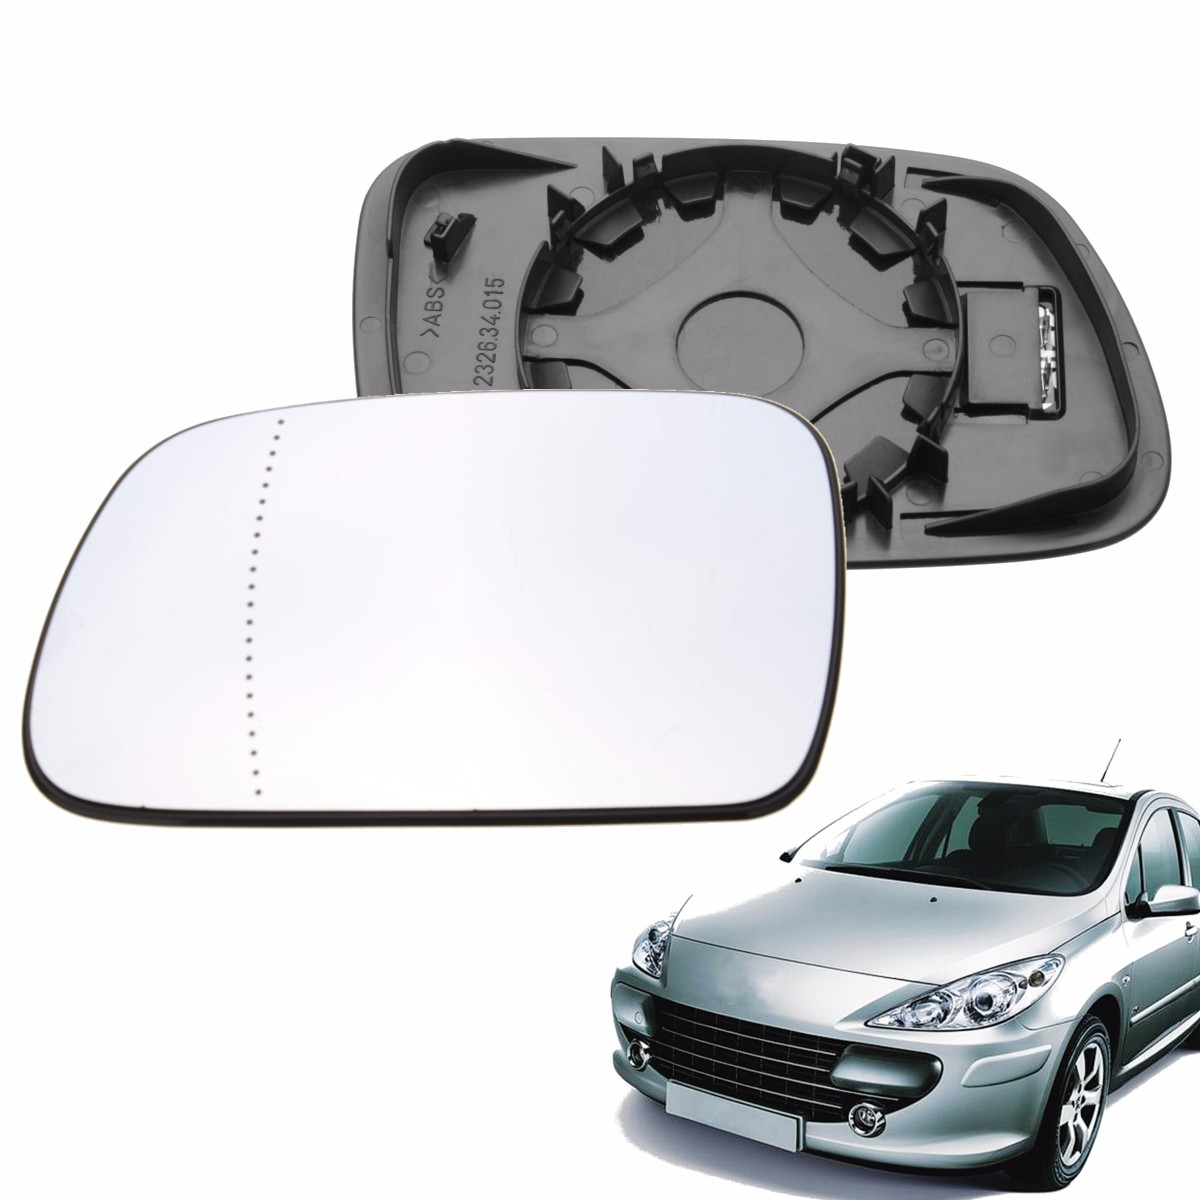 CITROEN C3 2002-2010  DOOR WING MIRROR GLASS RIGHT CONVEX